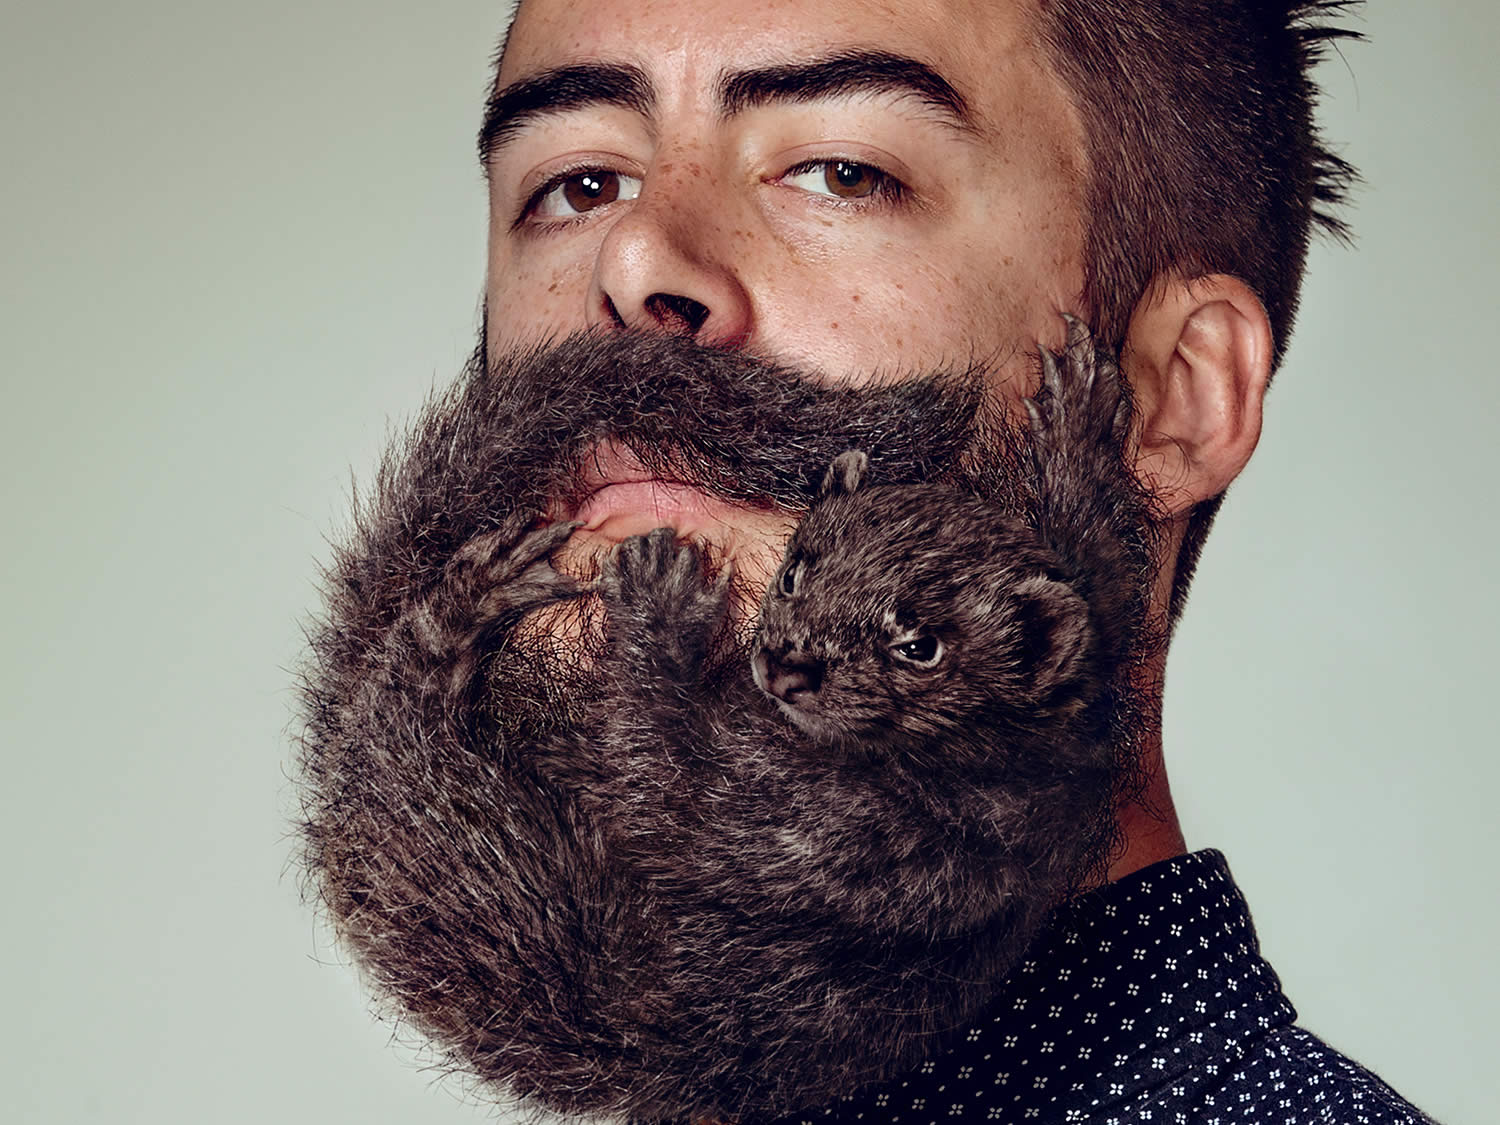 black haired beard, Electric Art / Schick NZ. By Sharpe + Associates Inc.